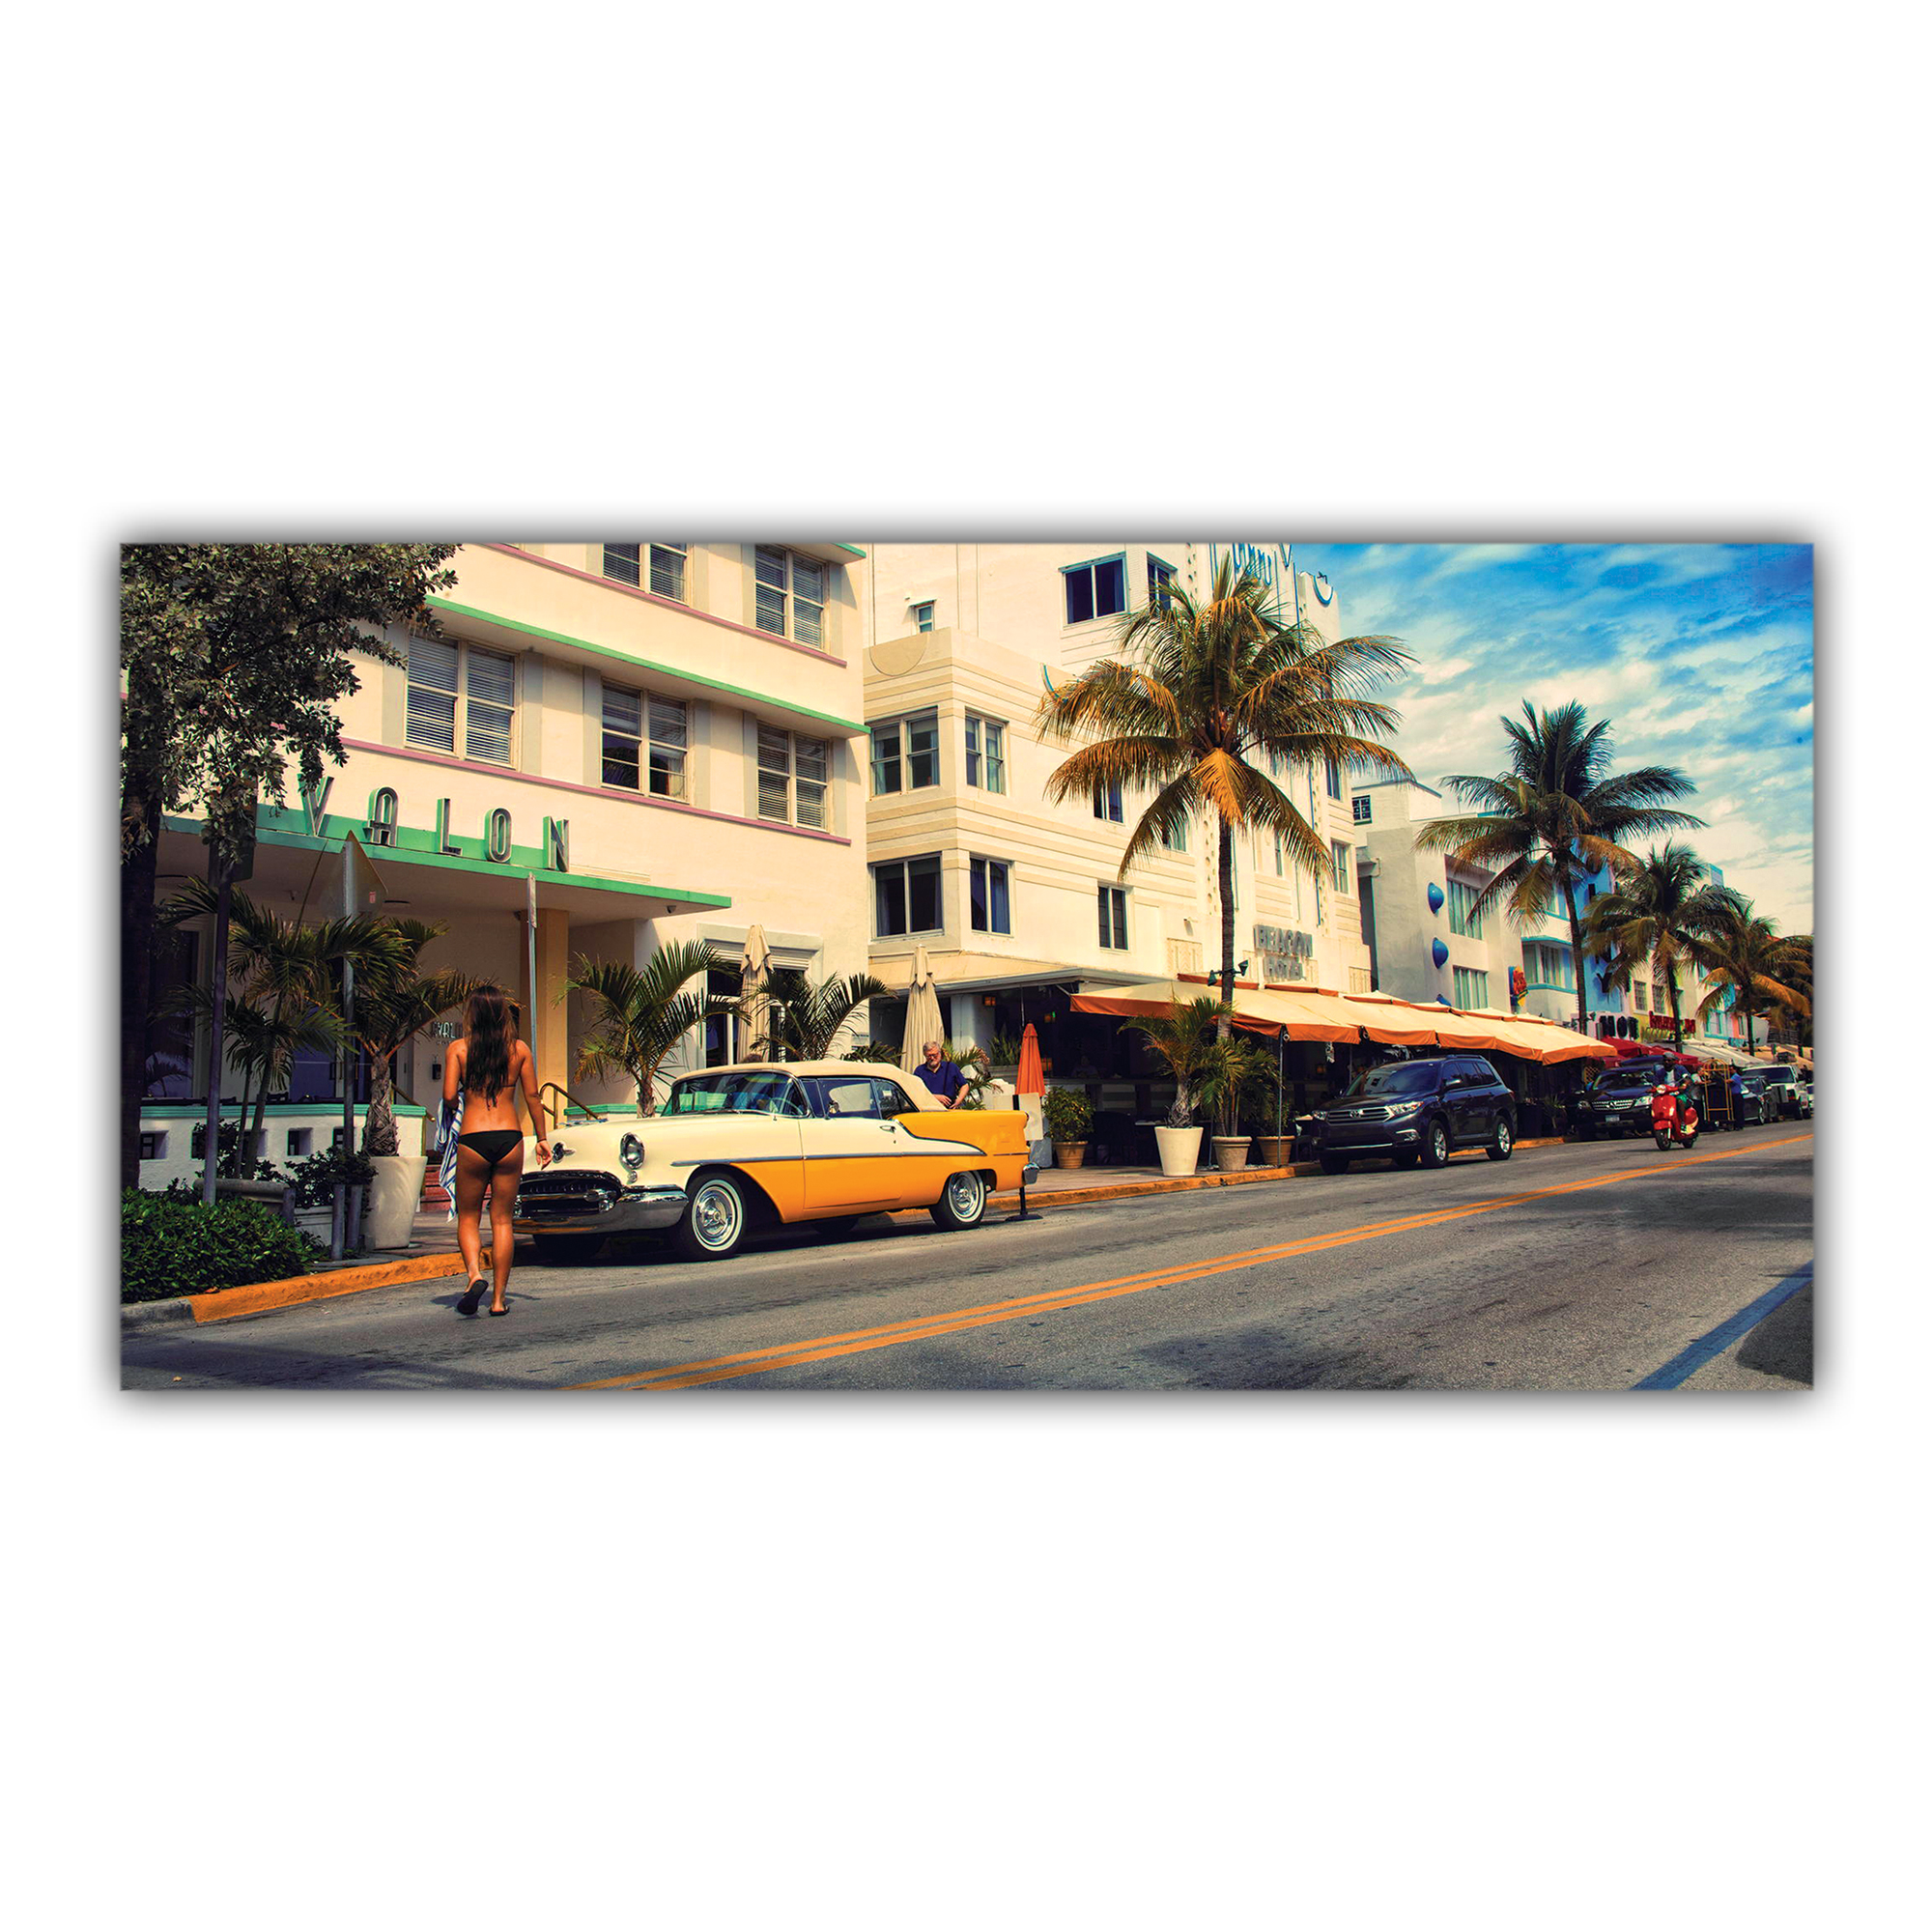 Vice City Miami Floride USA